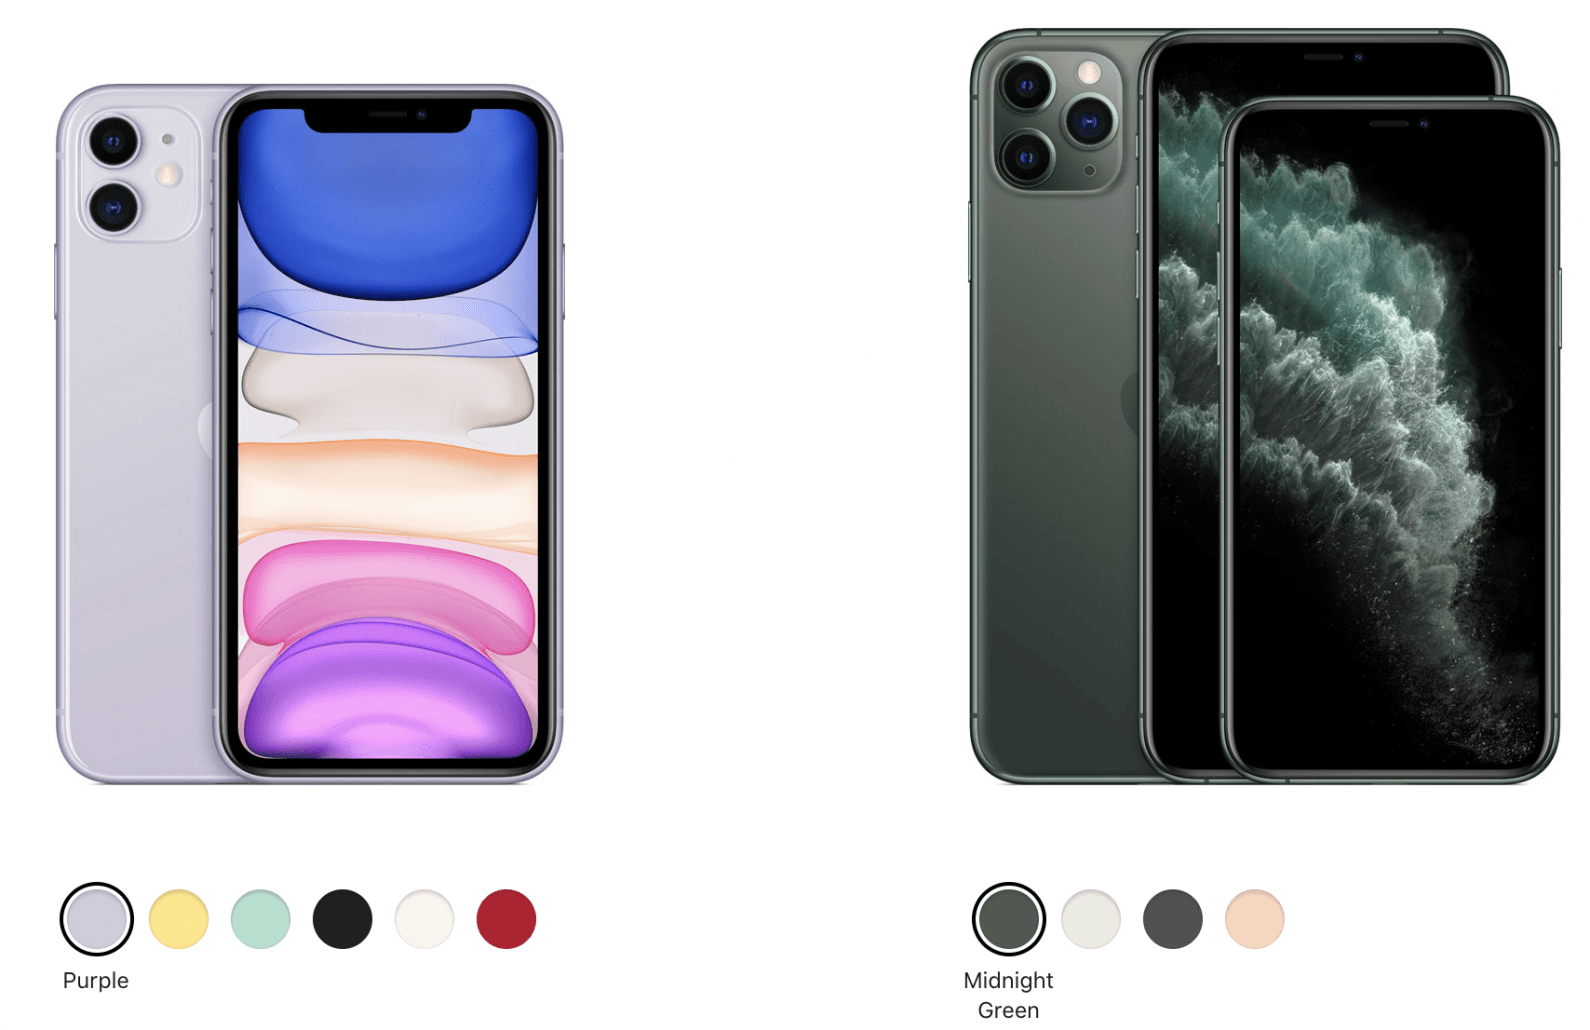 iphones side by side